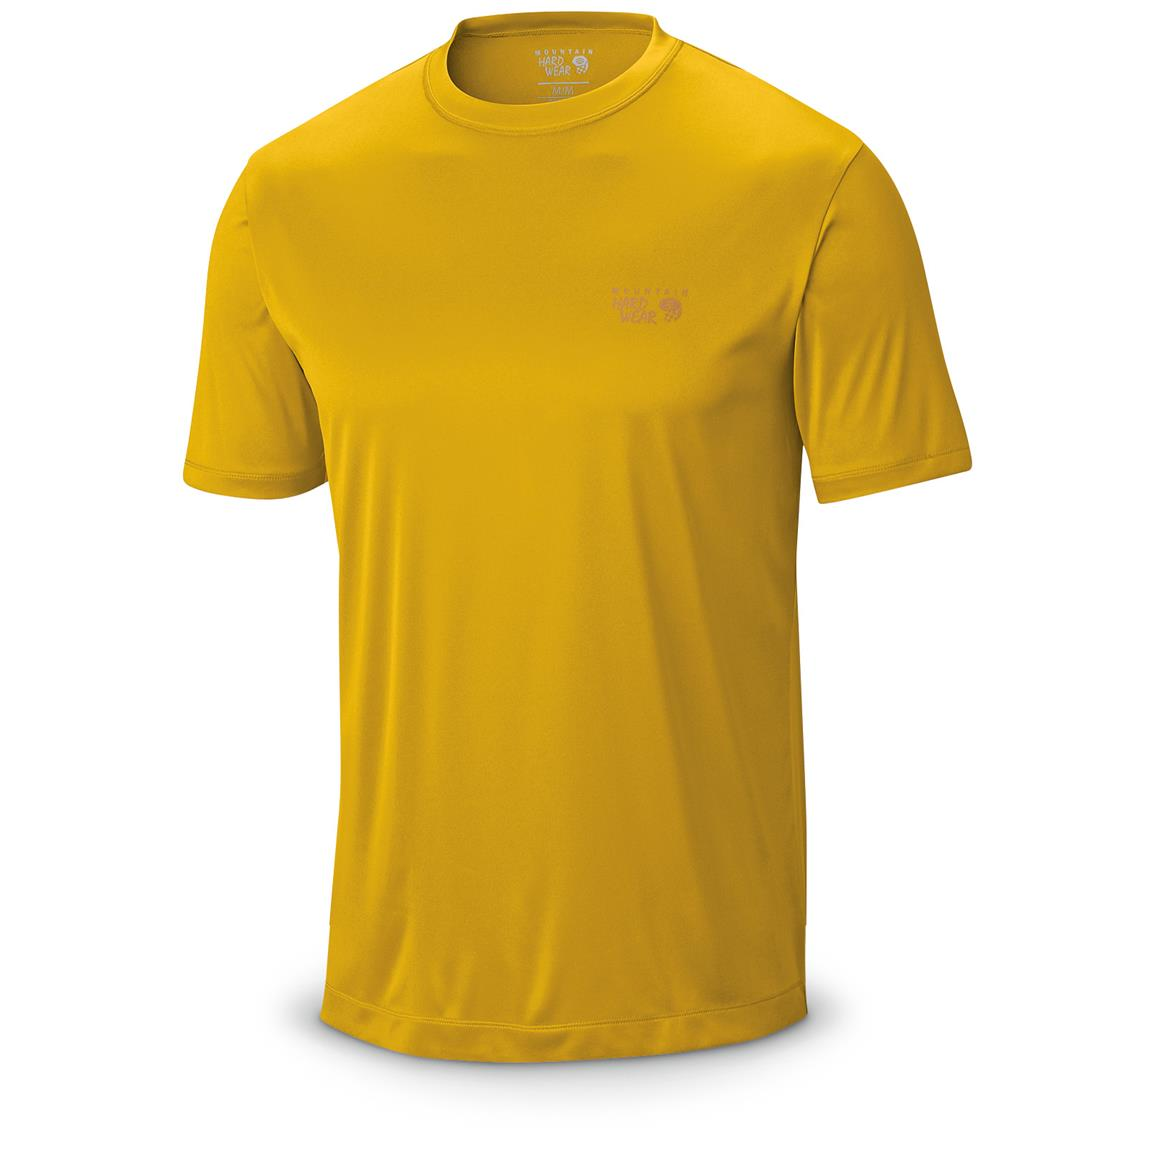 Mountain Hardwear Men's Wicked T-Shirt, Short Sleeved, Inca Gold Front